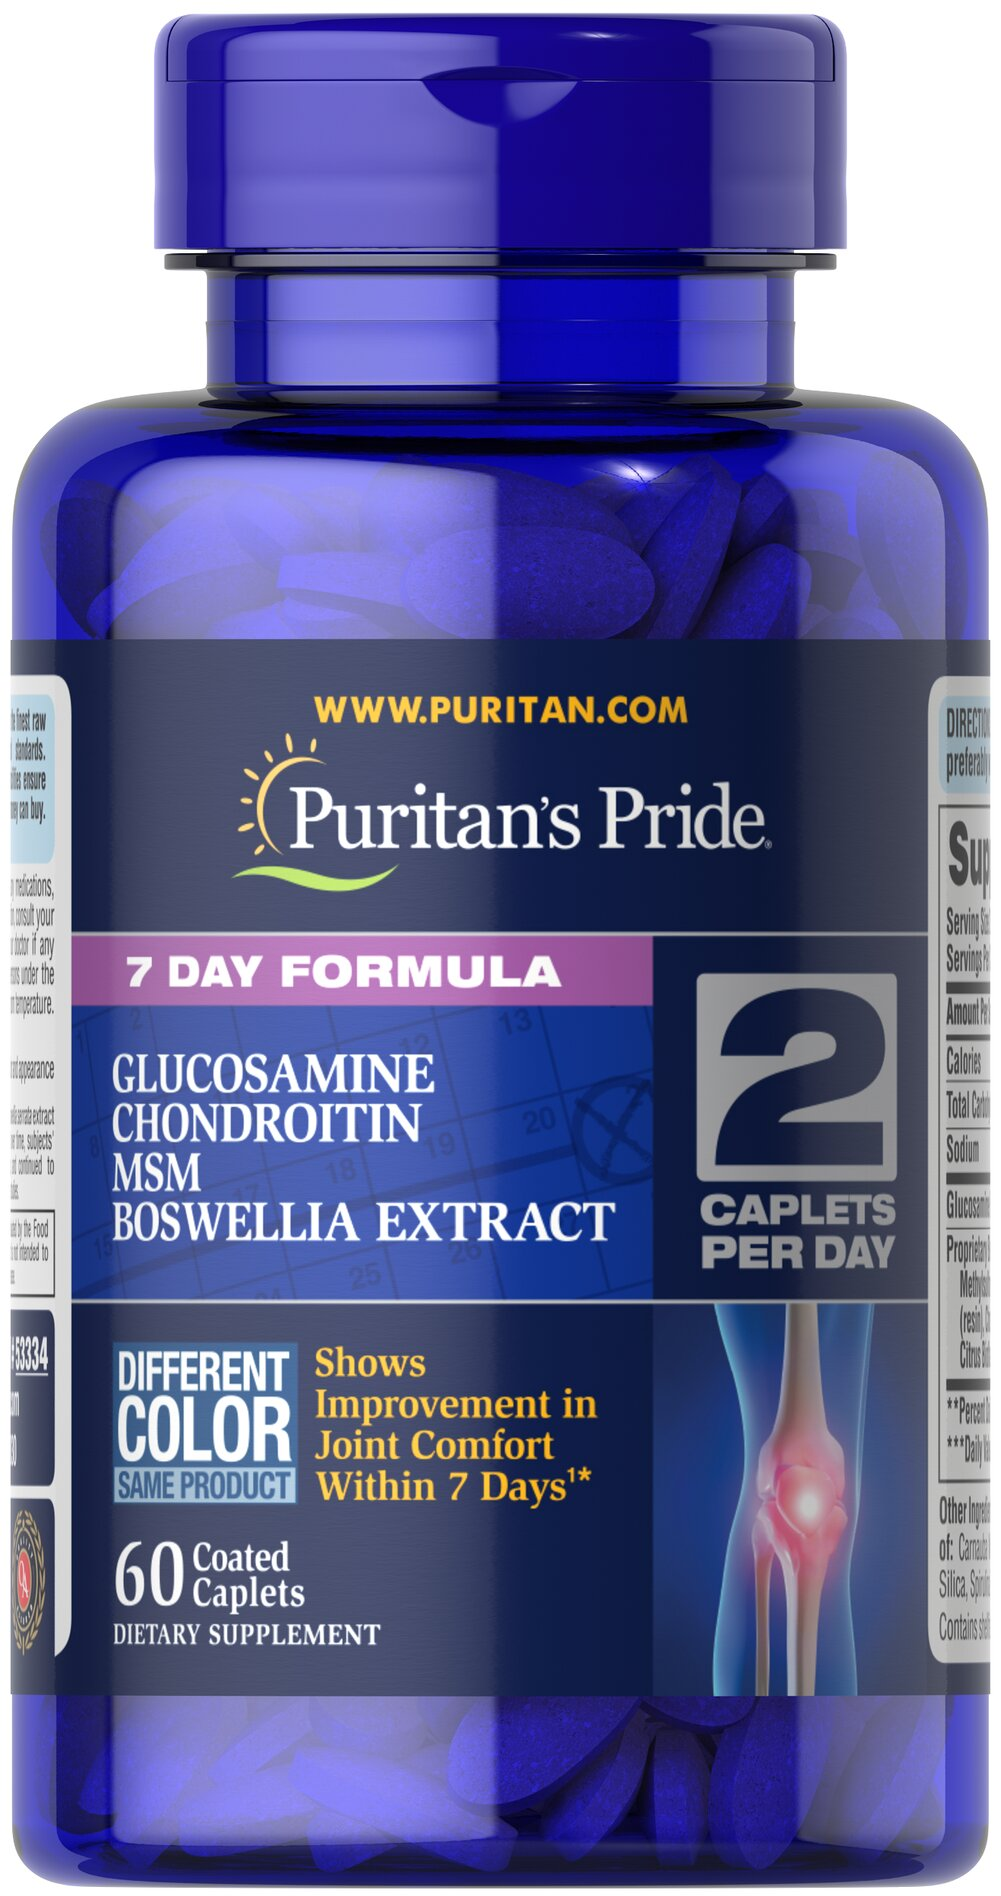 7 Day Formula Joint Soother® Glucosamine, Chondroitin, MSM & Boswellia <ul><li><span>Shows Improvement in Joint Comfort in 7 Days<sup>1</sup>**</span></li><li><span>Promotes Mobility and Flexibility**</span></li><li><span>Supports Joint Health</span></li><li><span>Supports Joint Comfort</span></li><li><span>Glucosamine</span></li><li><span&gt